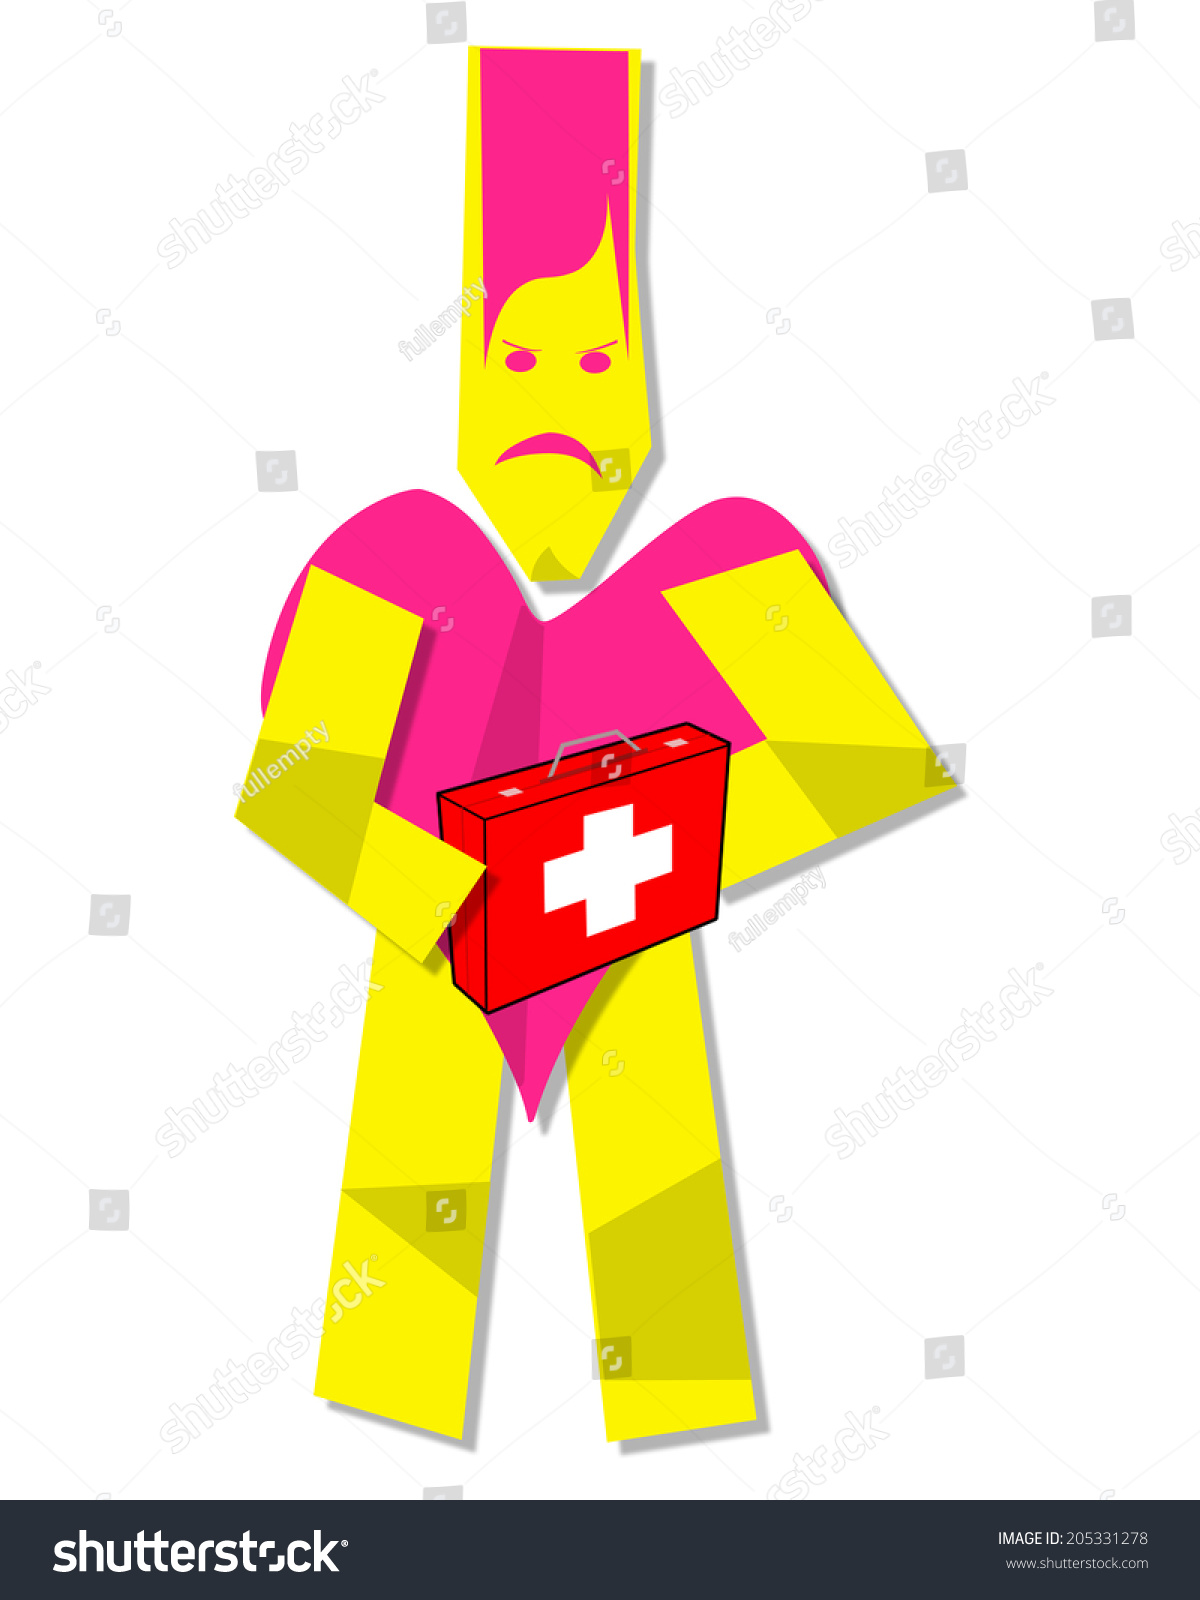 hight resolution of illustration of heart man clipart with first aid kit